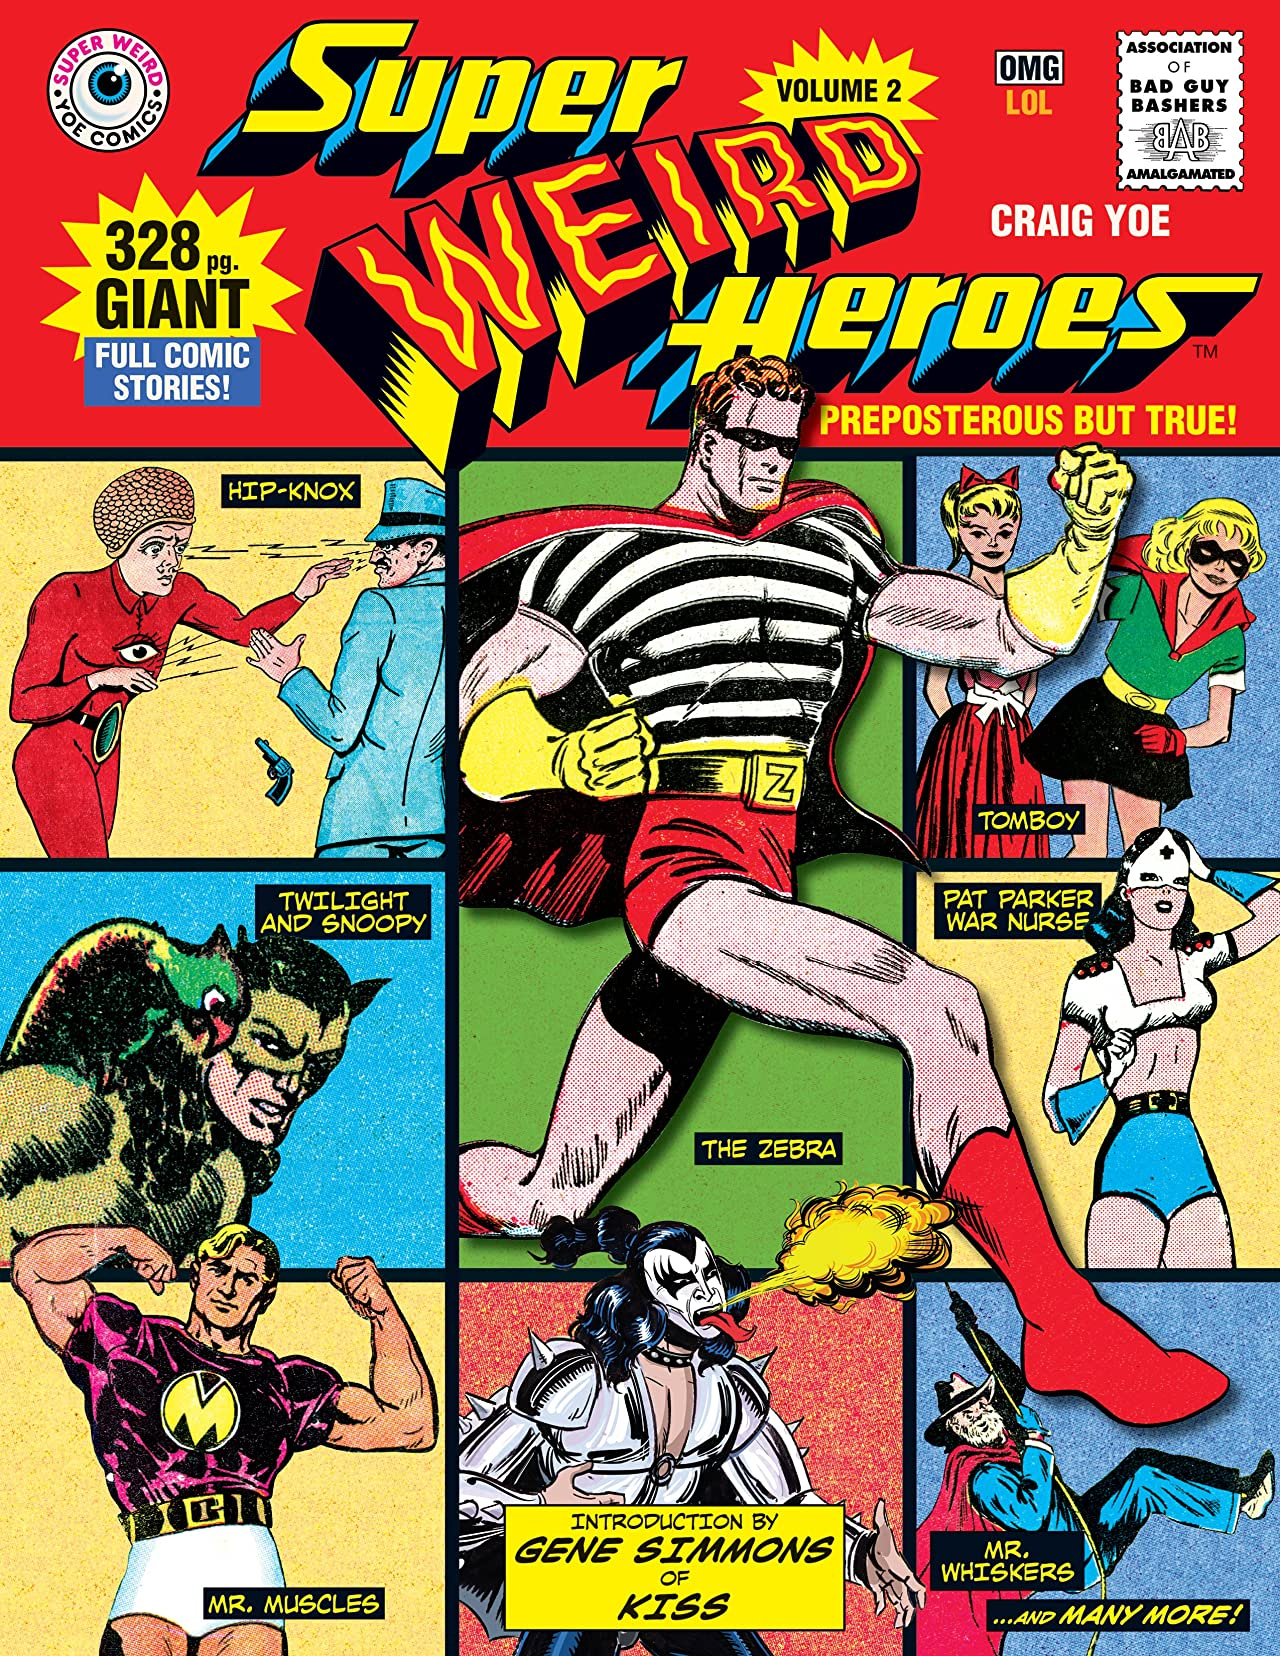 Super Weird Heroes: Preposterous But True